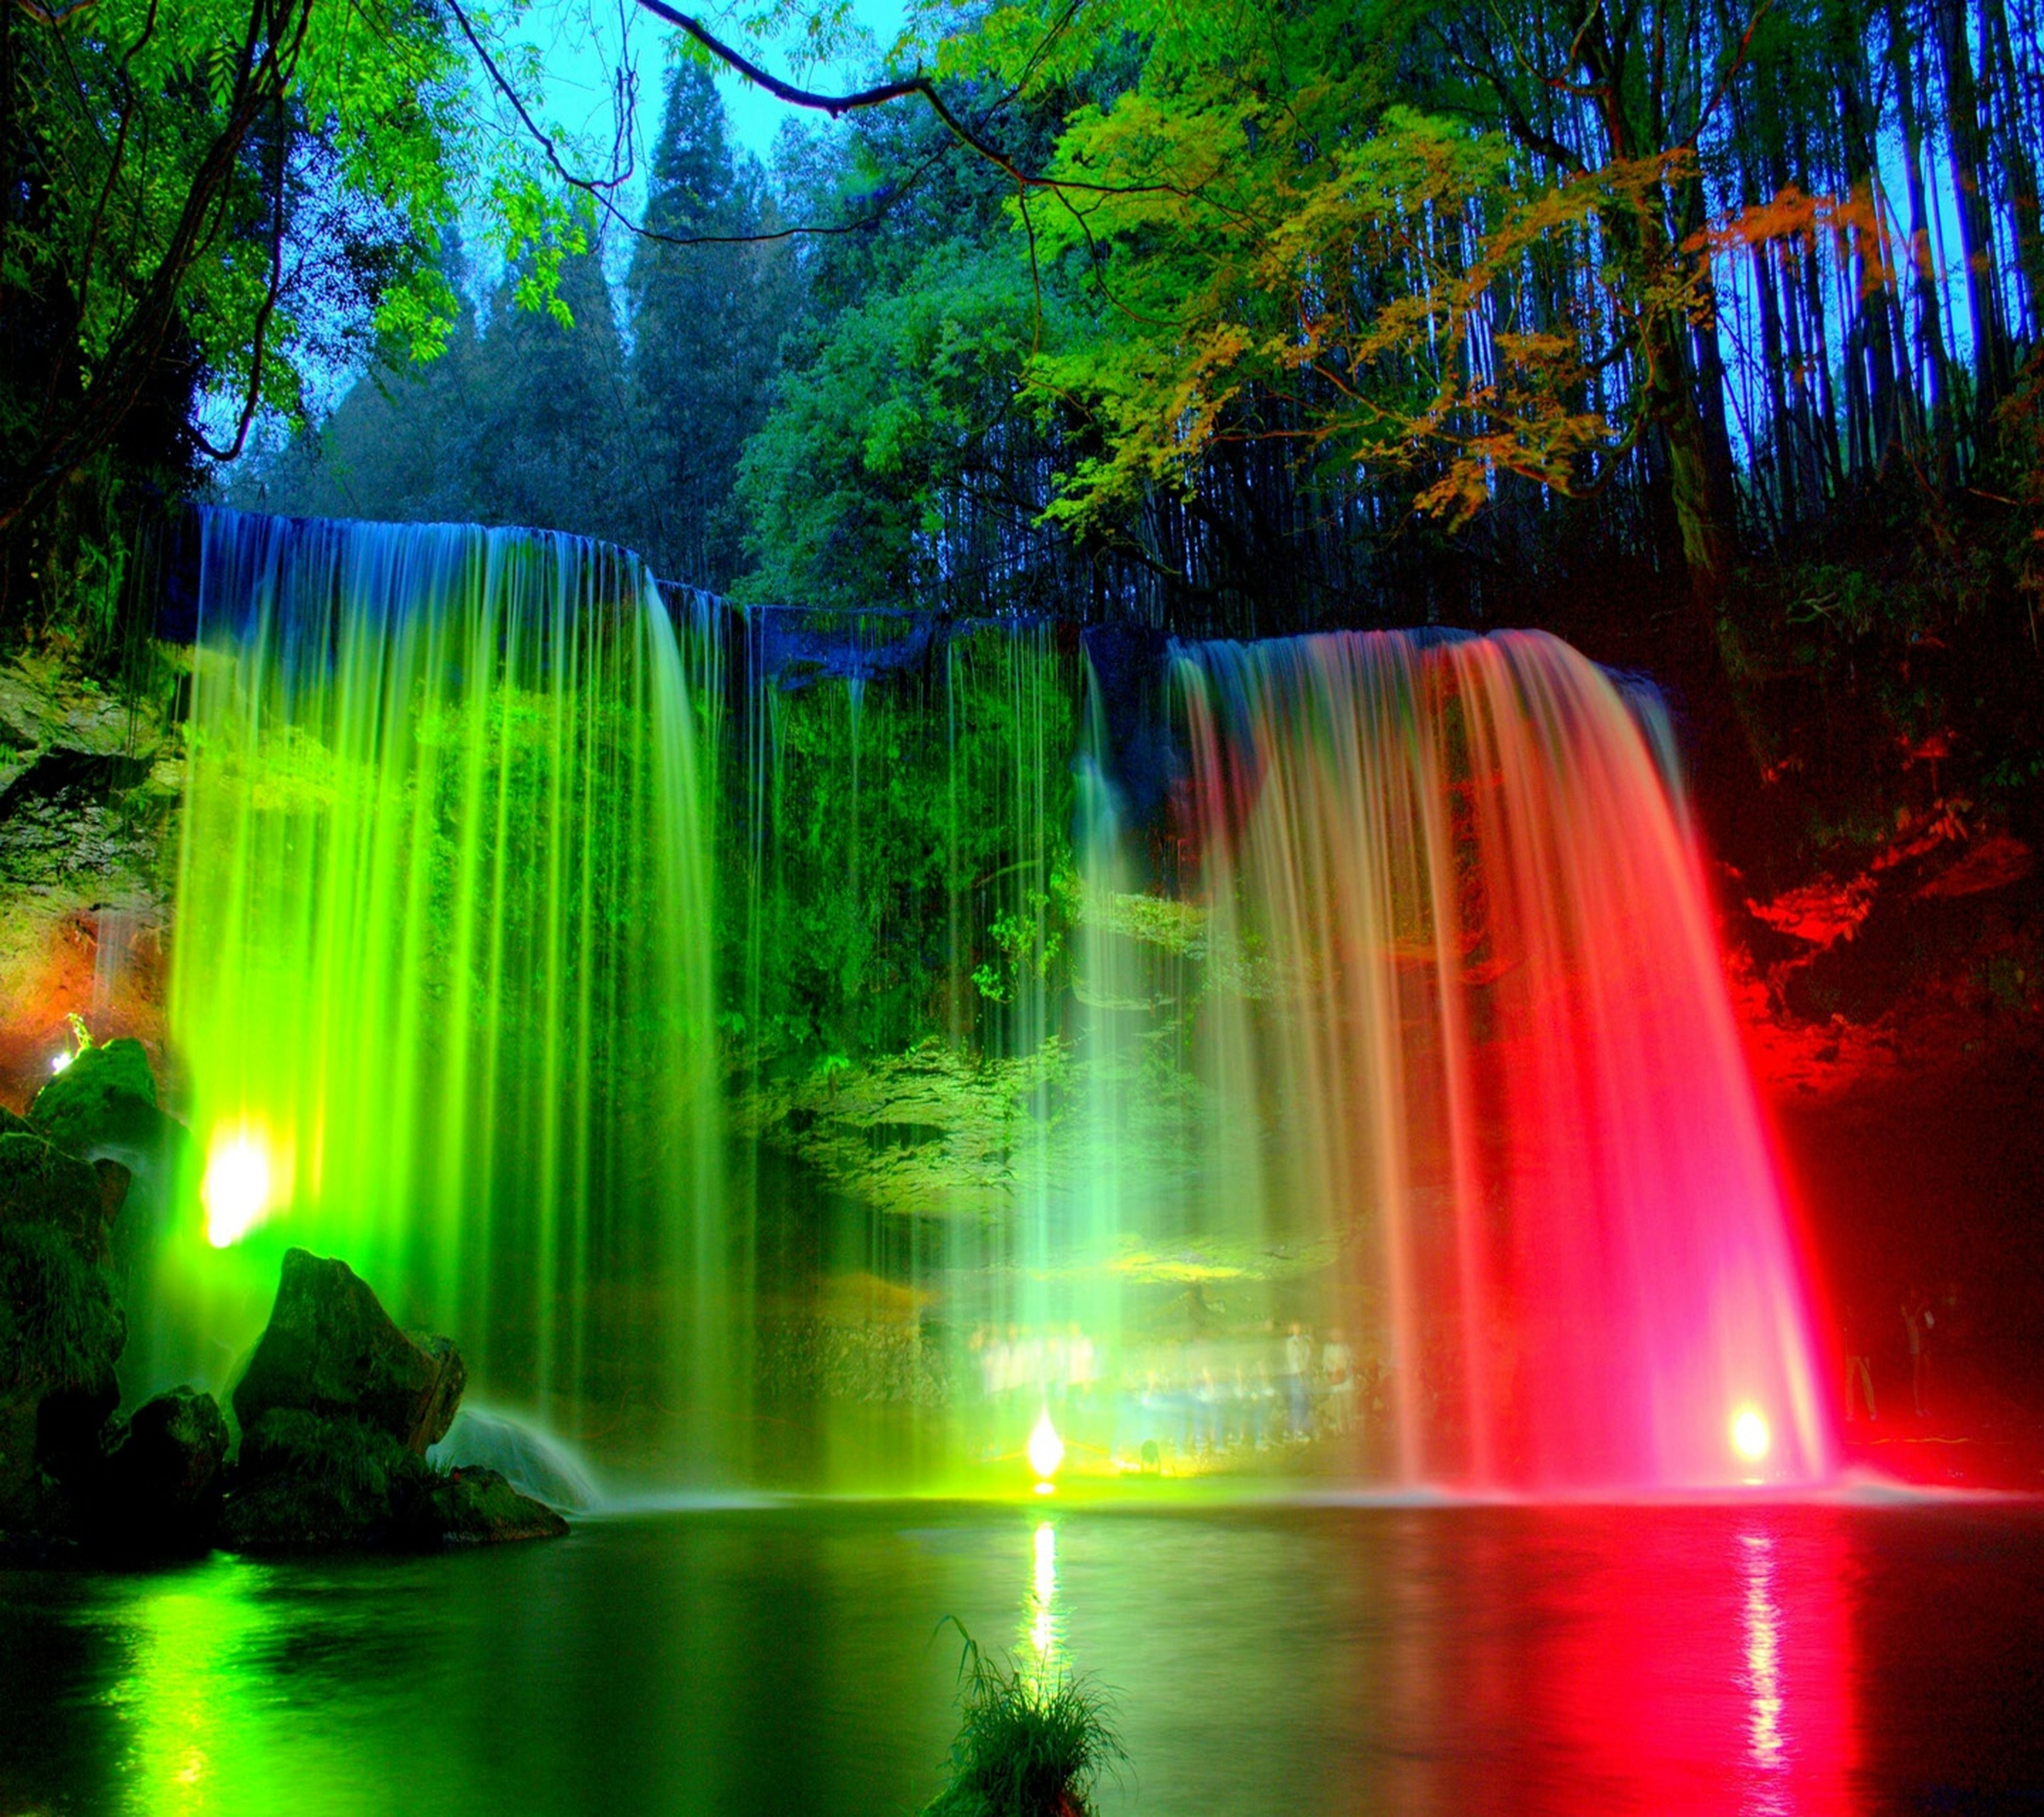 water, tree, reflection, fountain, long exposure, beauty in nature, waterfront, motion, multi colored, scenics, nature, tranquility, tranquil scene, idyllic, pond, flowing water, waterfall, outdoors, green color, park - man made space